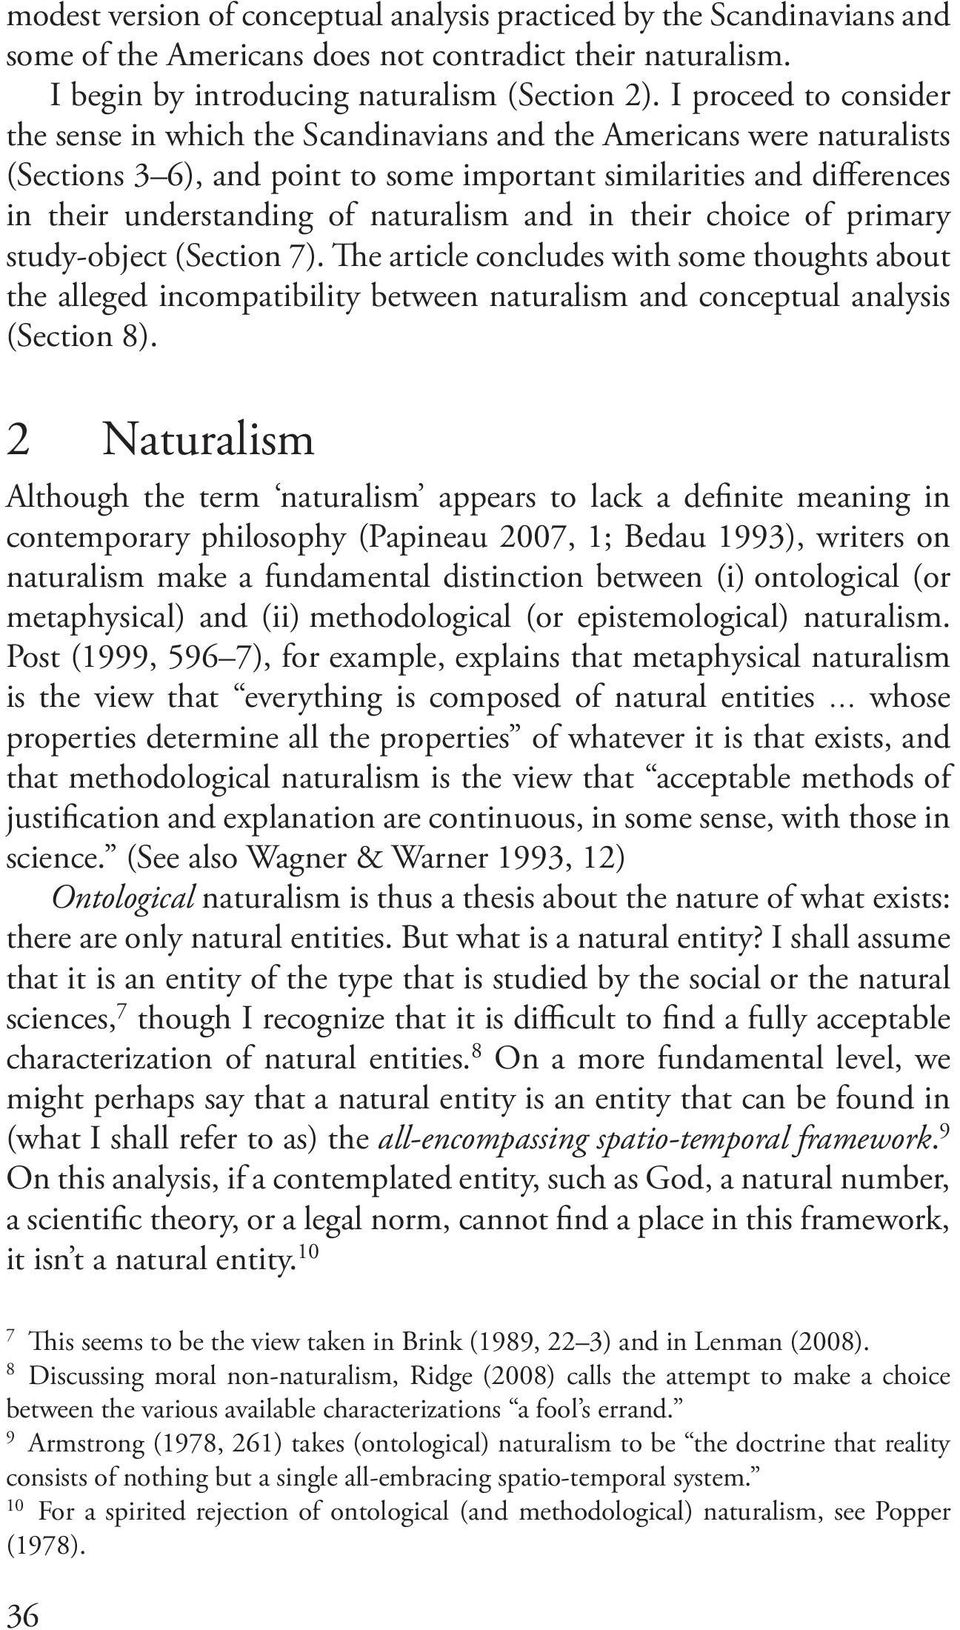 naturalism and in their choice of primary study-object (Section 7). The article concludes with some thoughts about the alleged incompatibility between naturalism and conceptual analysis (Section 8).